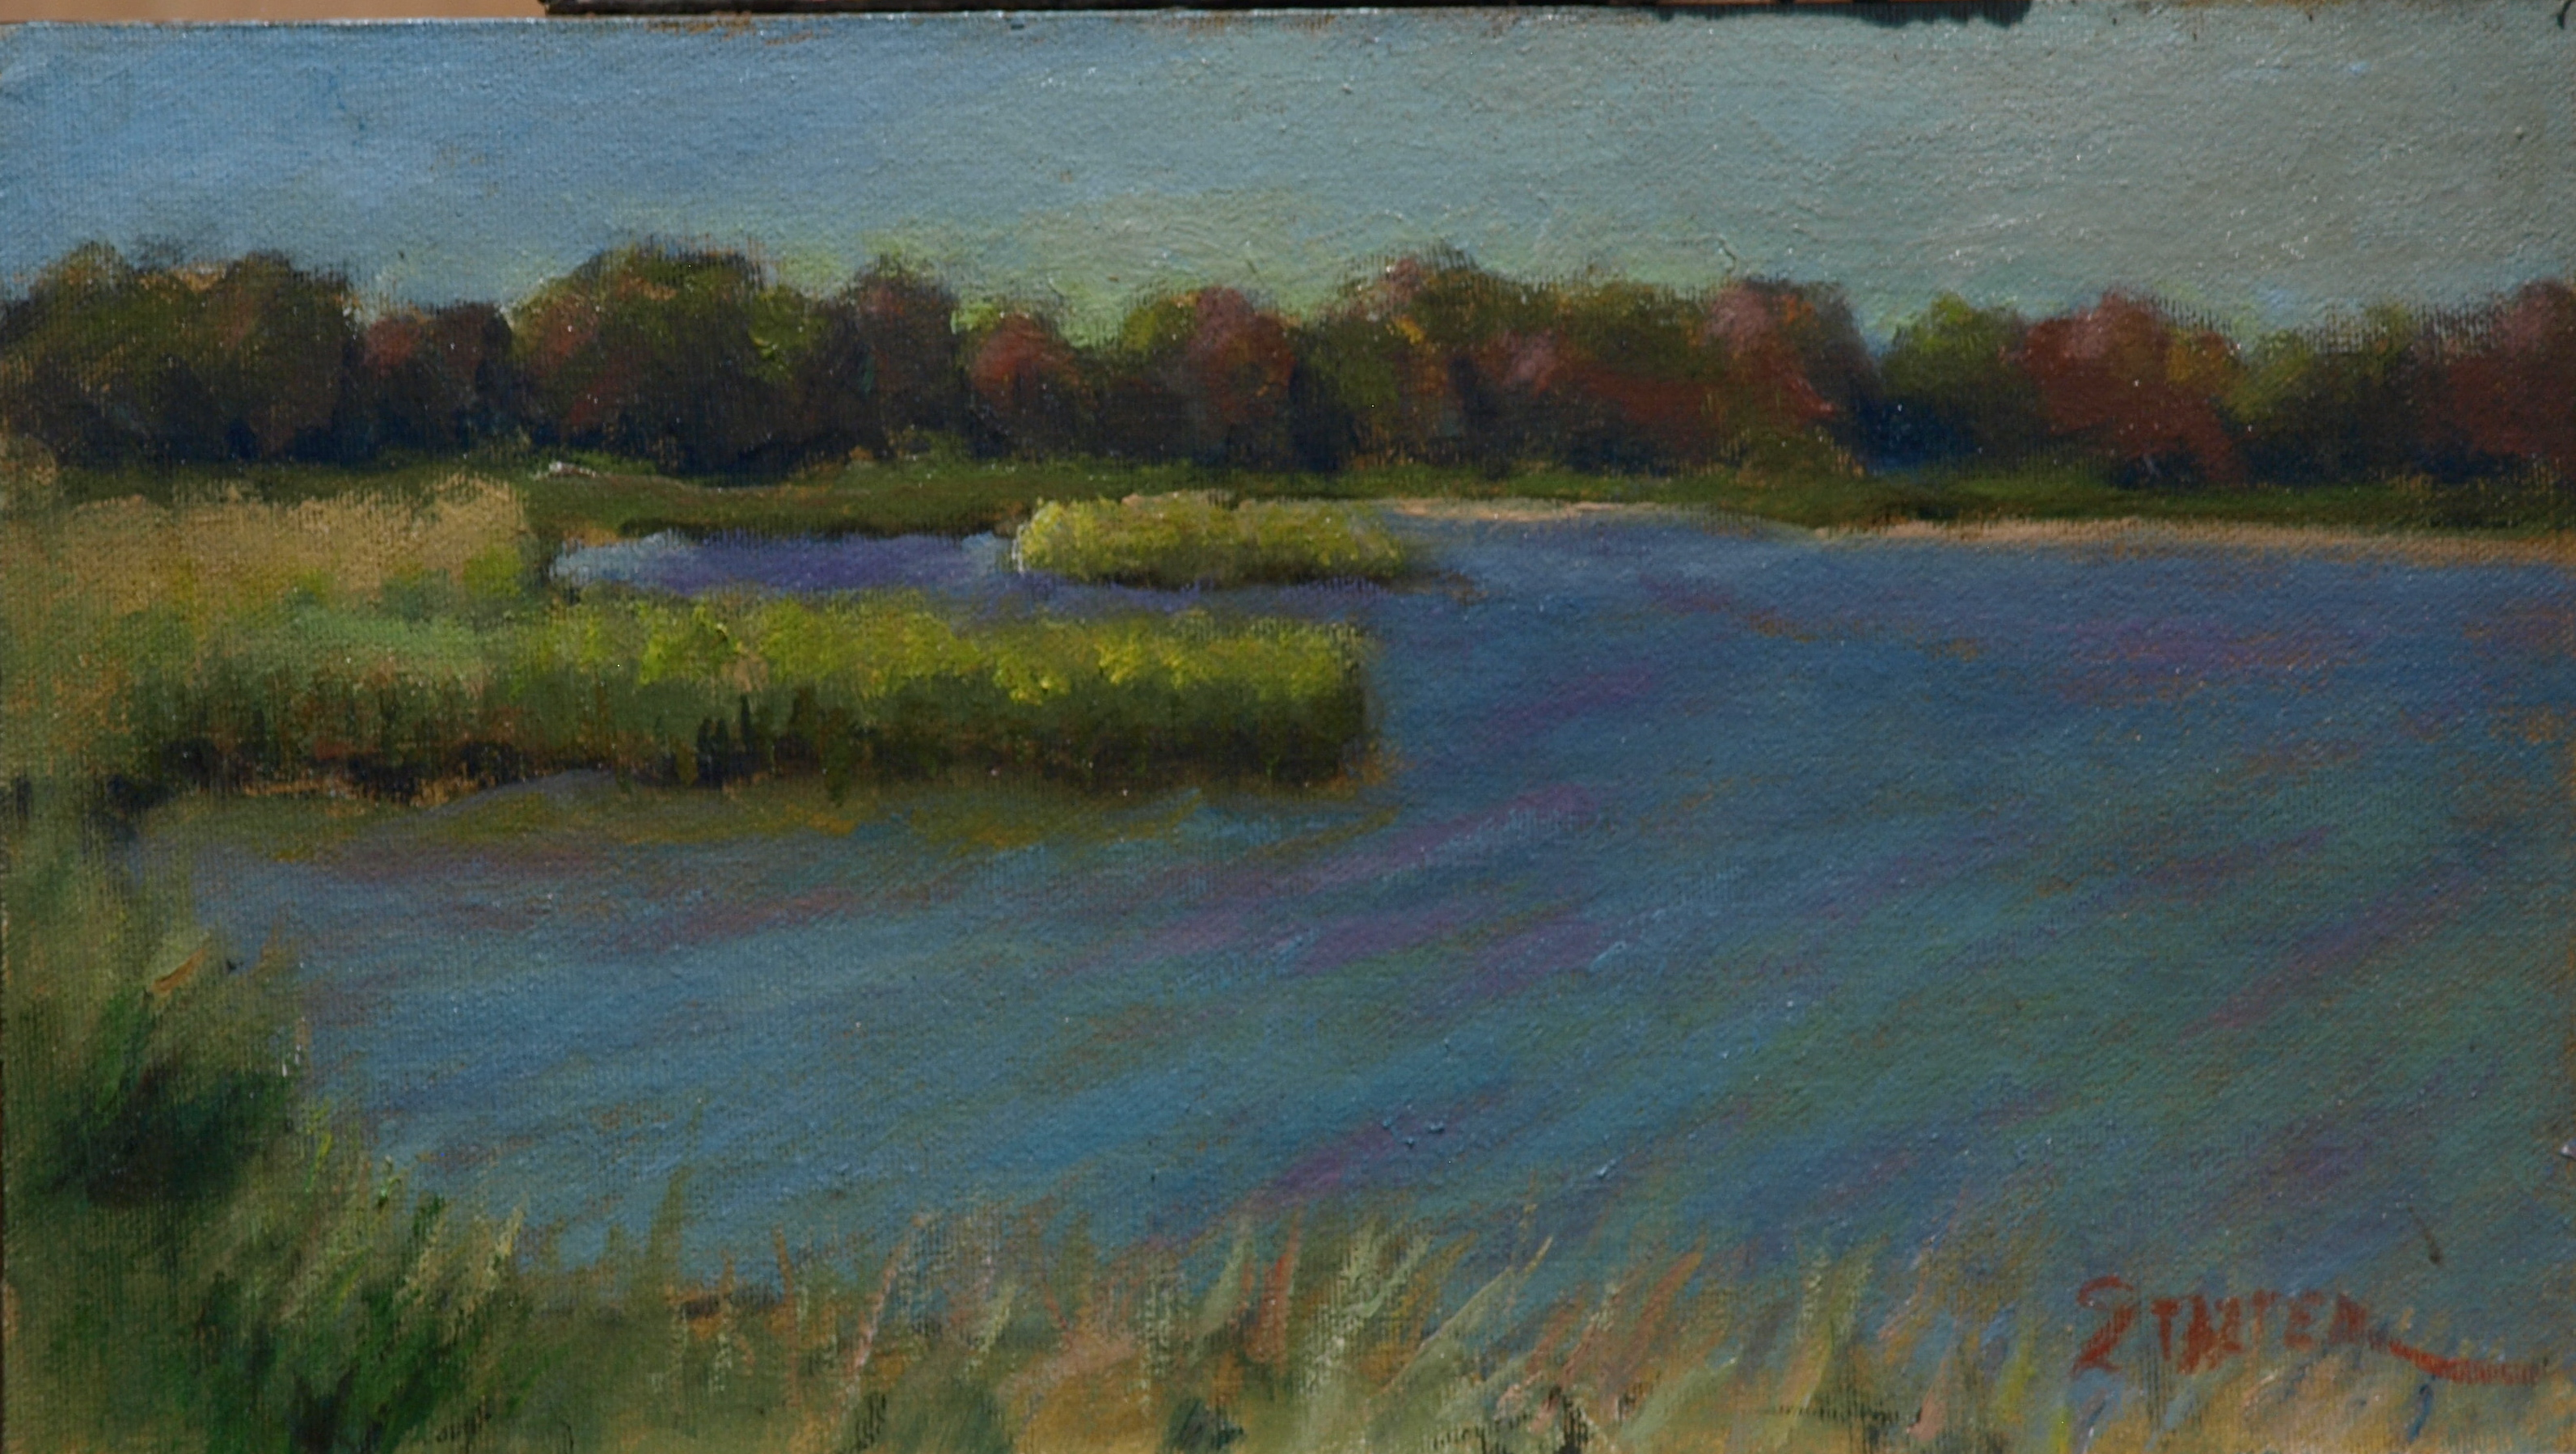 Palmer Pond, Oil on Canvas on Panel, 8 x 14 Inches, by Richard Stalter, $225